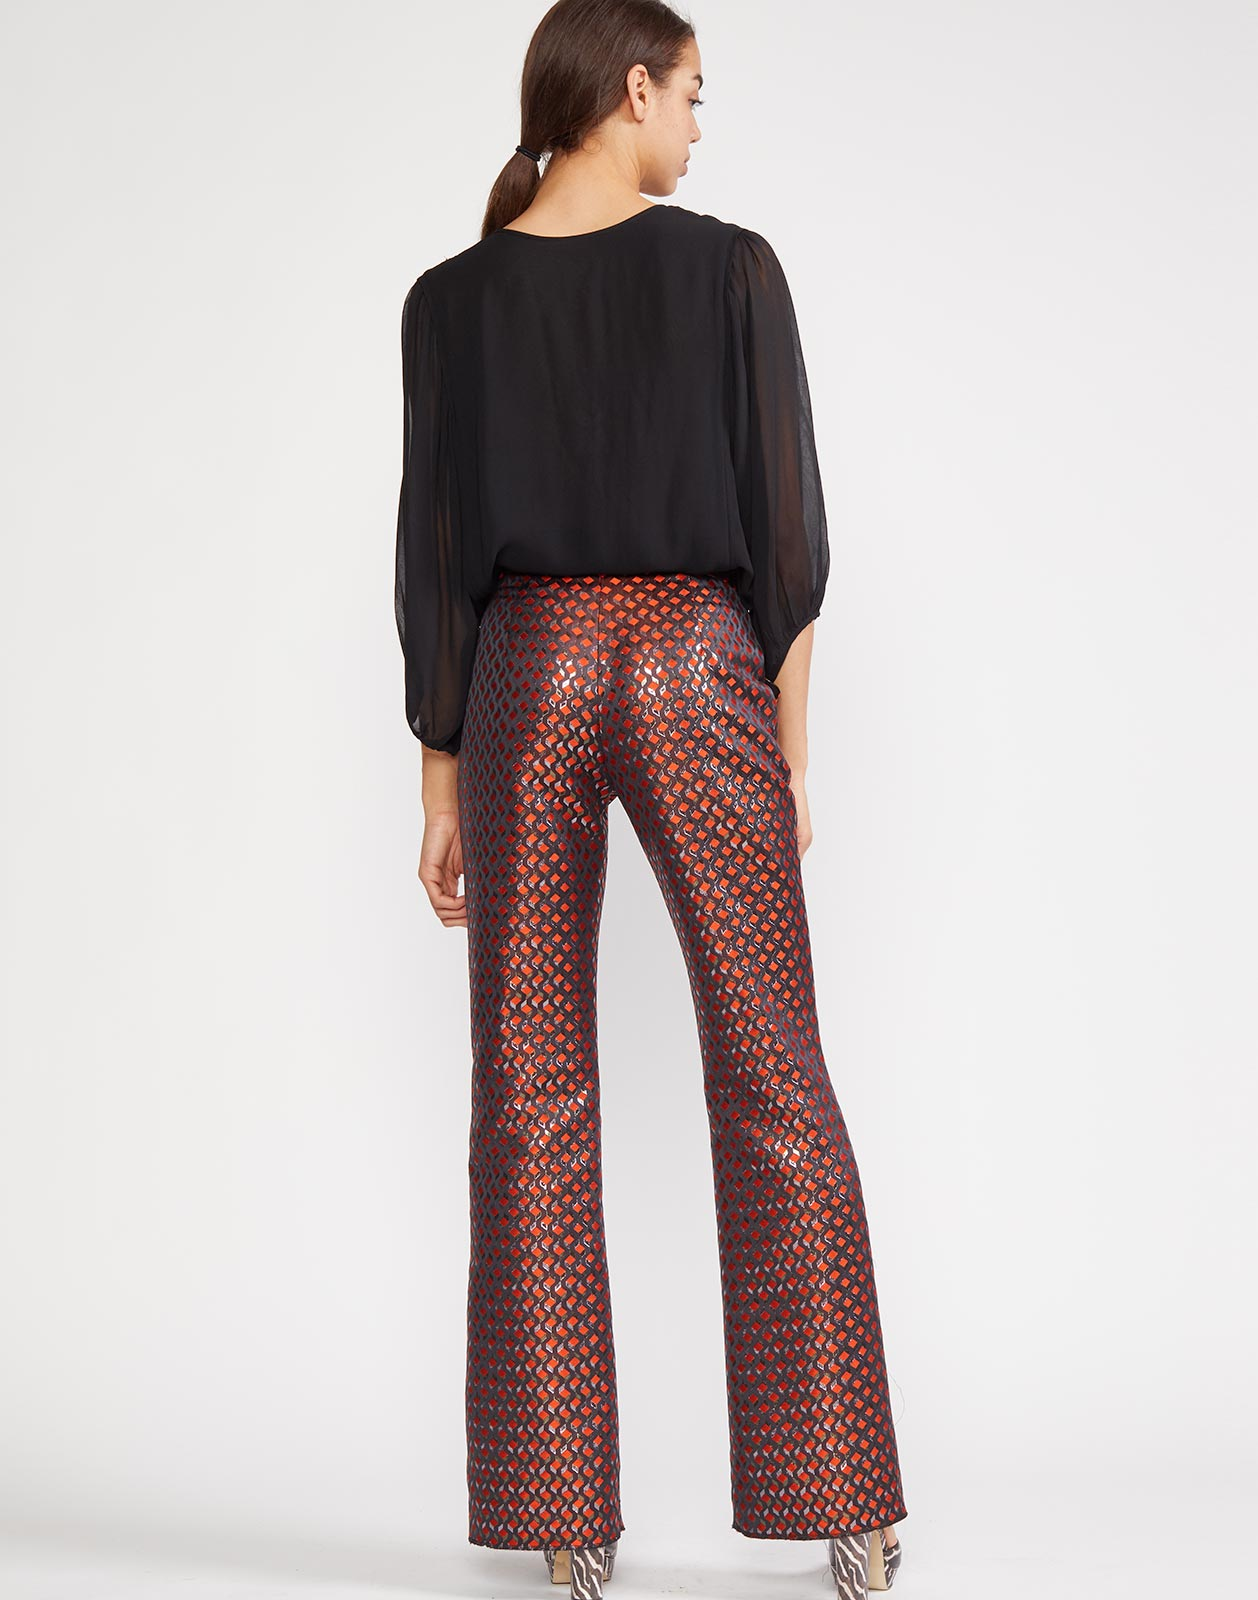 Back view of Geometric jacquard flare pant